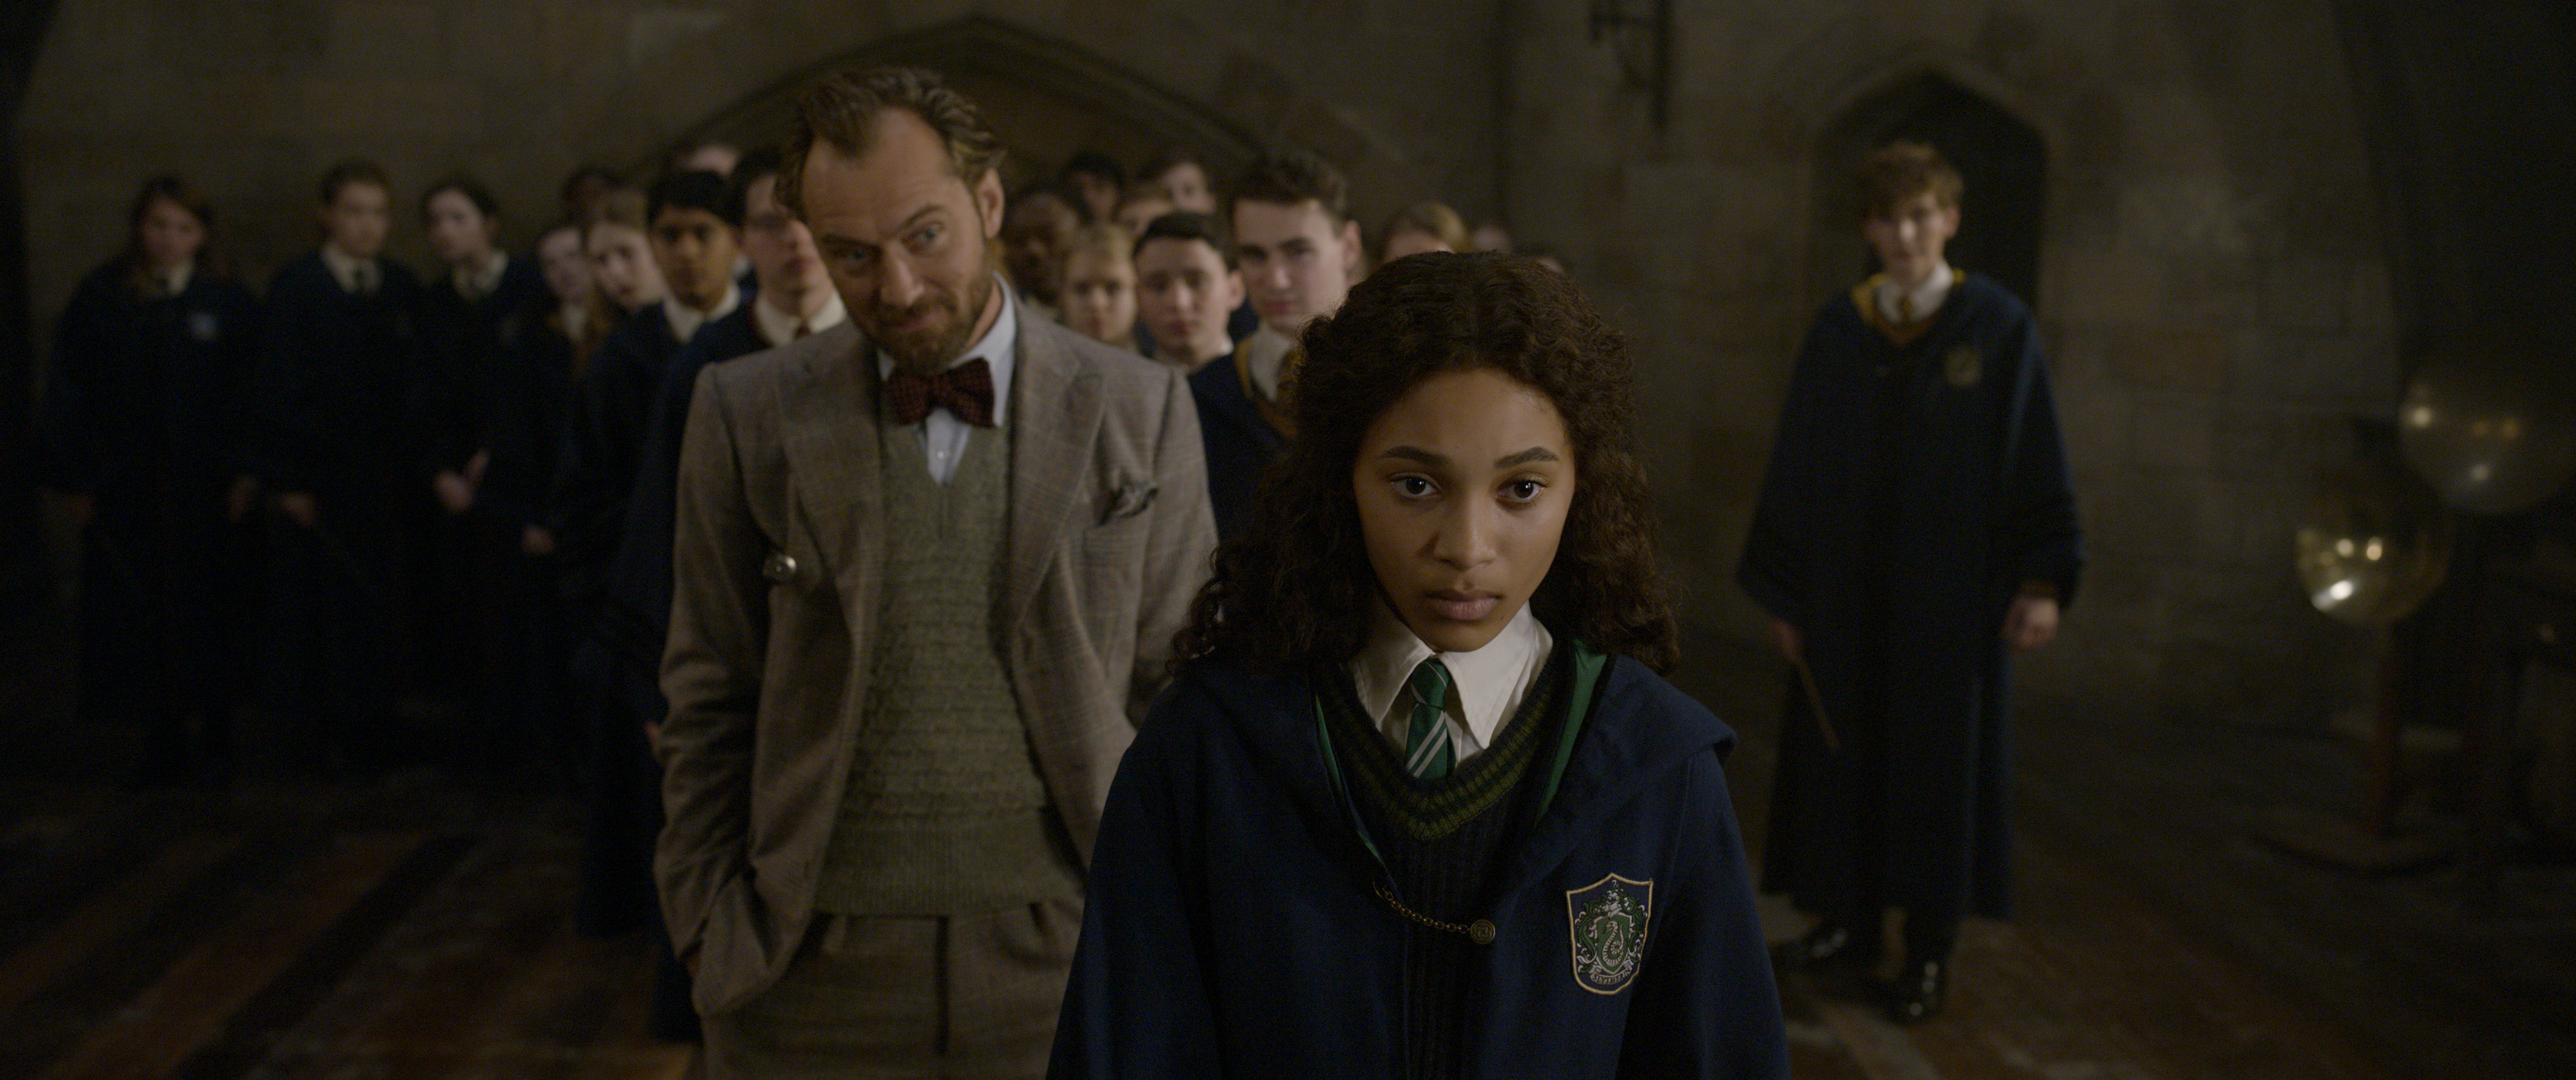 """Fantastic Beasts: The Crimes of Grindelwald"": Albus Dumbledore (Jude Law) and young Leta Lestrange (Thea Lamb)"